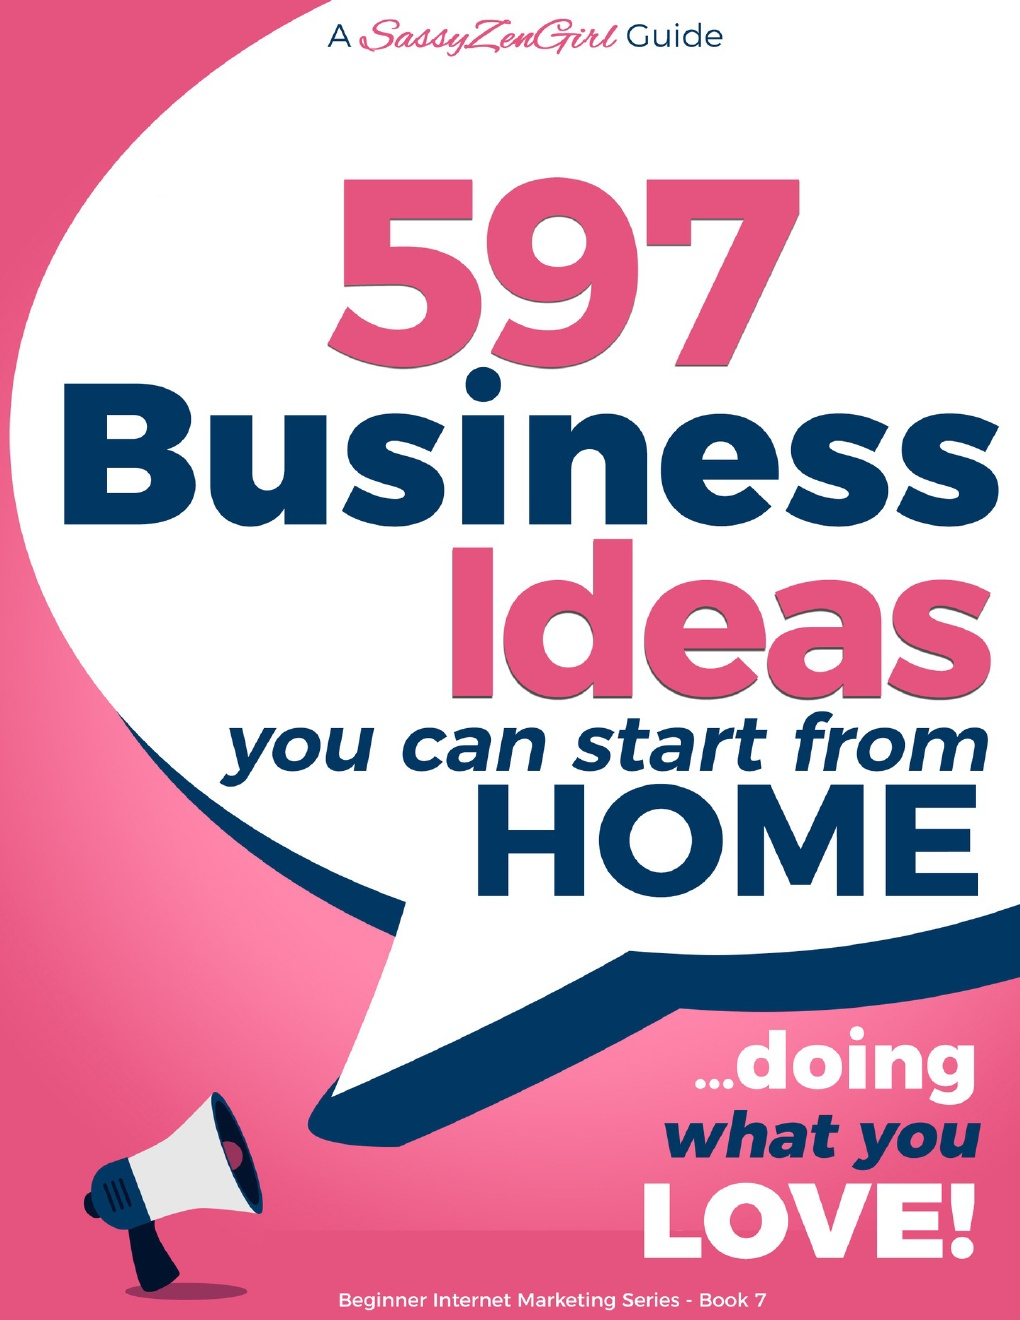 597 Business Ideas You can Start from Home – doing what you LOVE!